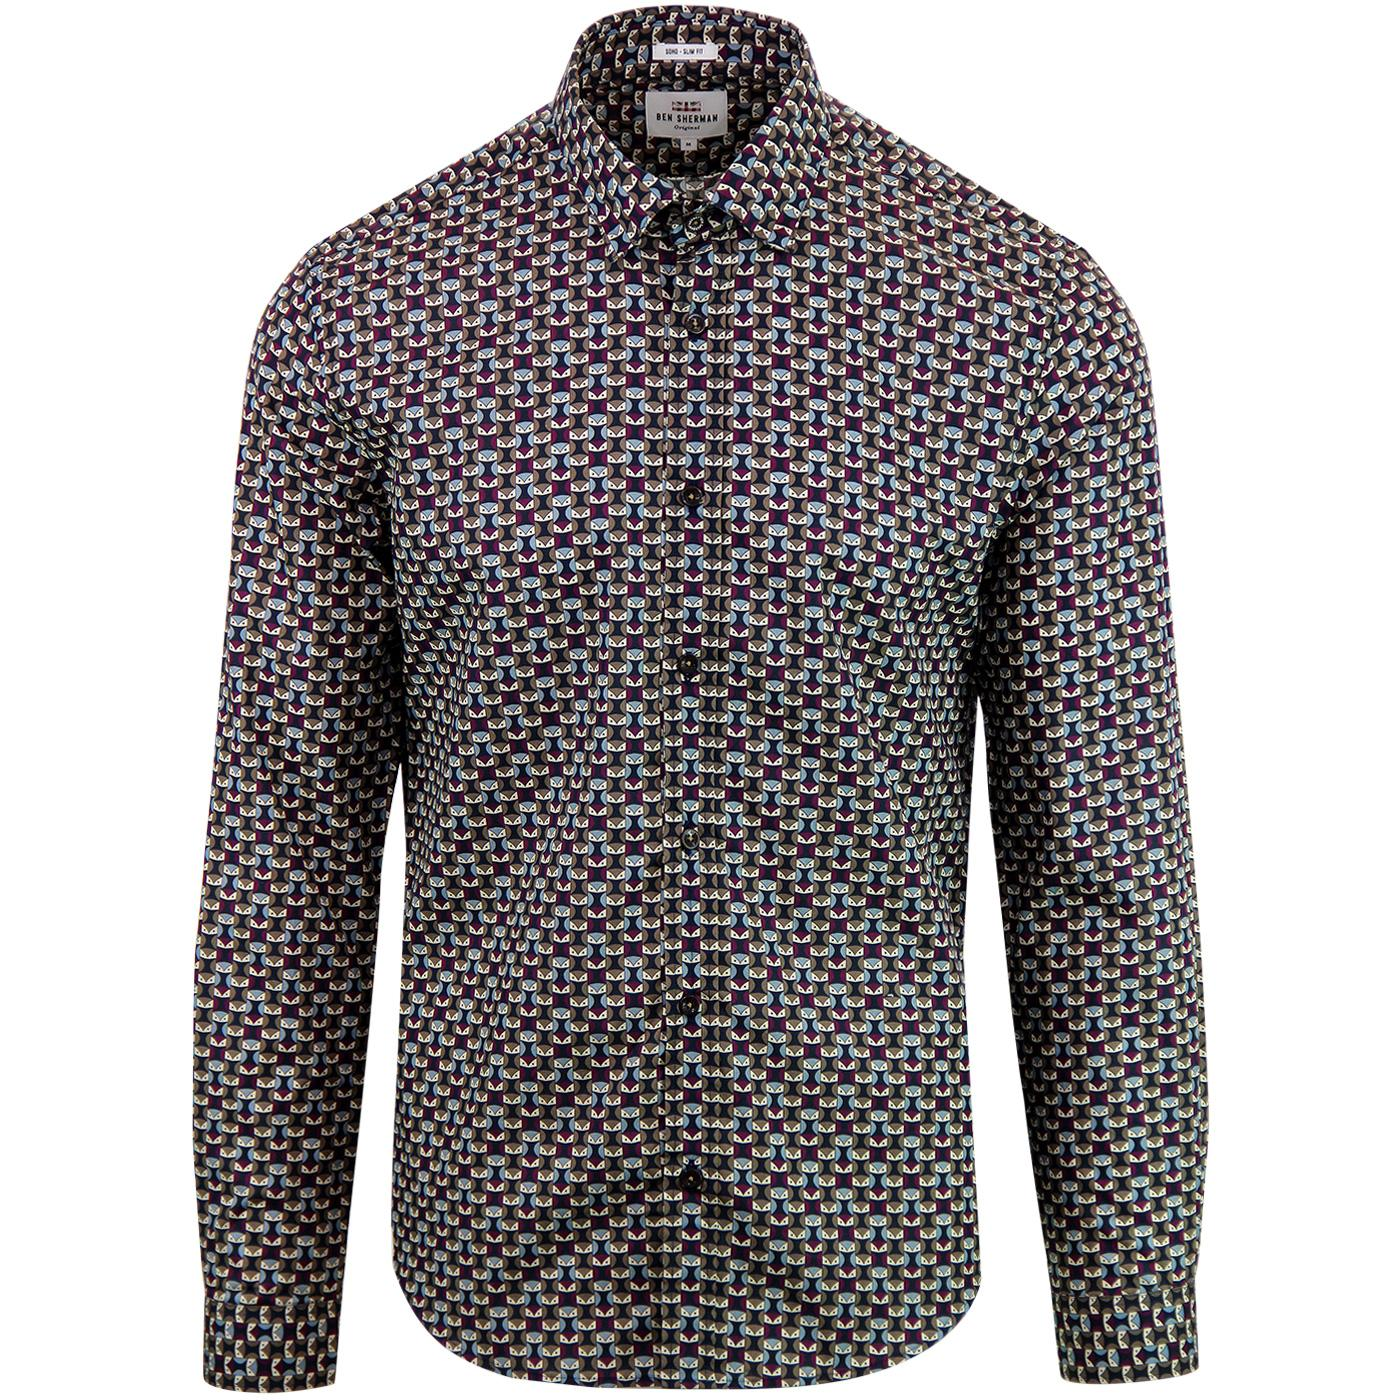 BEN SHERMAN Mens Retro Sixties Geo Owl Print Shirt